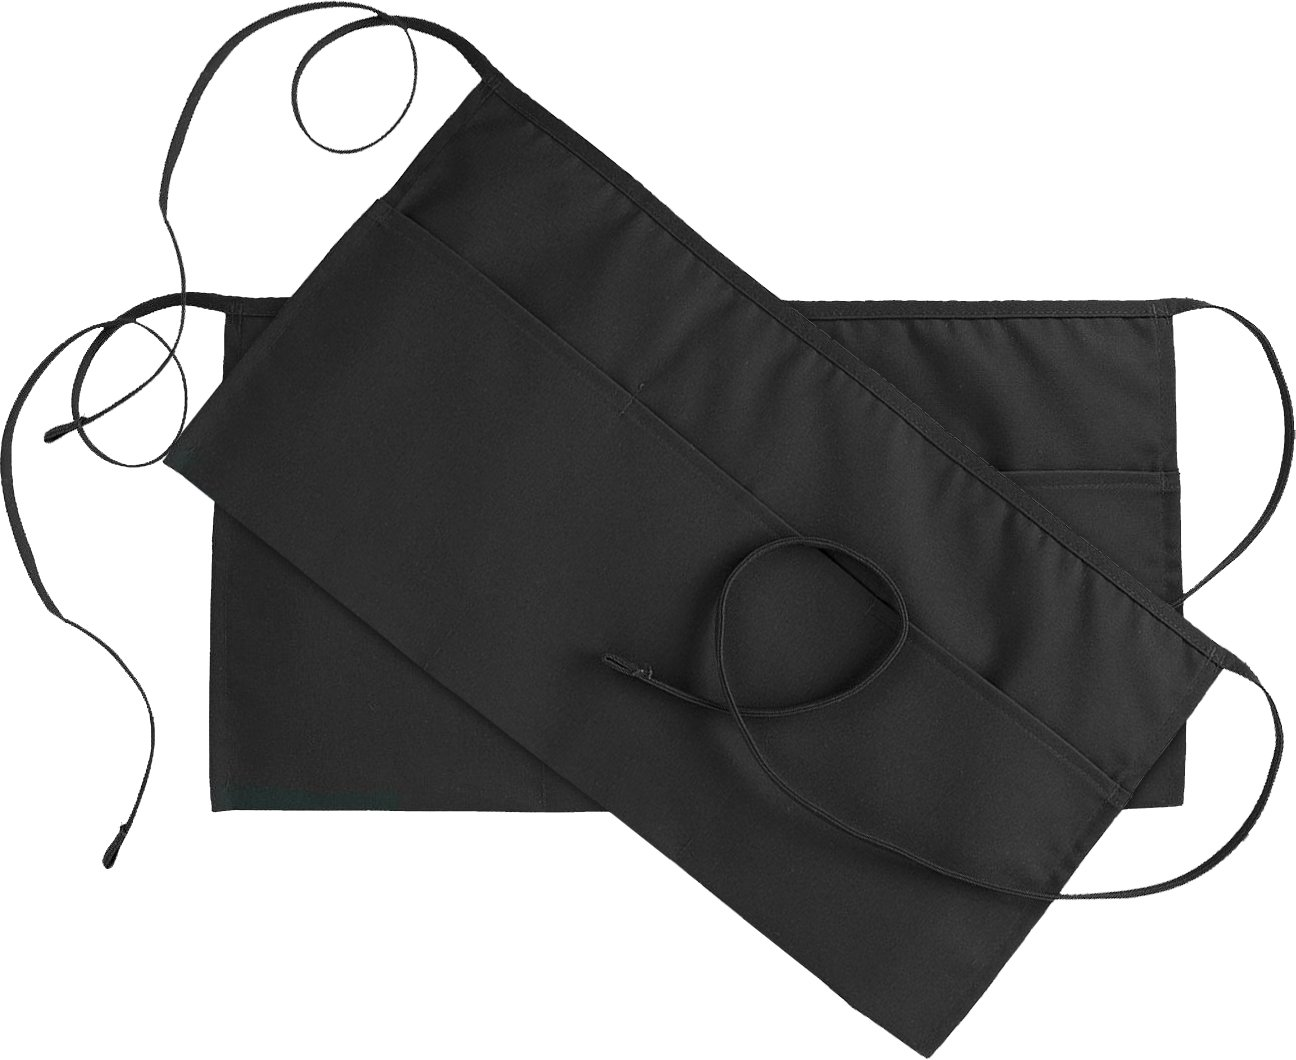 3 Pockets Waist Apron (SET of 2, Black, 24x12 inches) - Durable, Comfortable, Easy Care, Restaurant Half Aprons - by Utopia Wear Utopia Kitchen UTAPRON3POCKET12